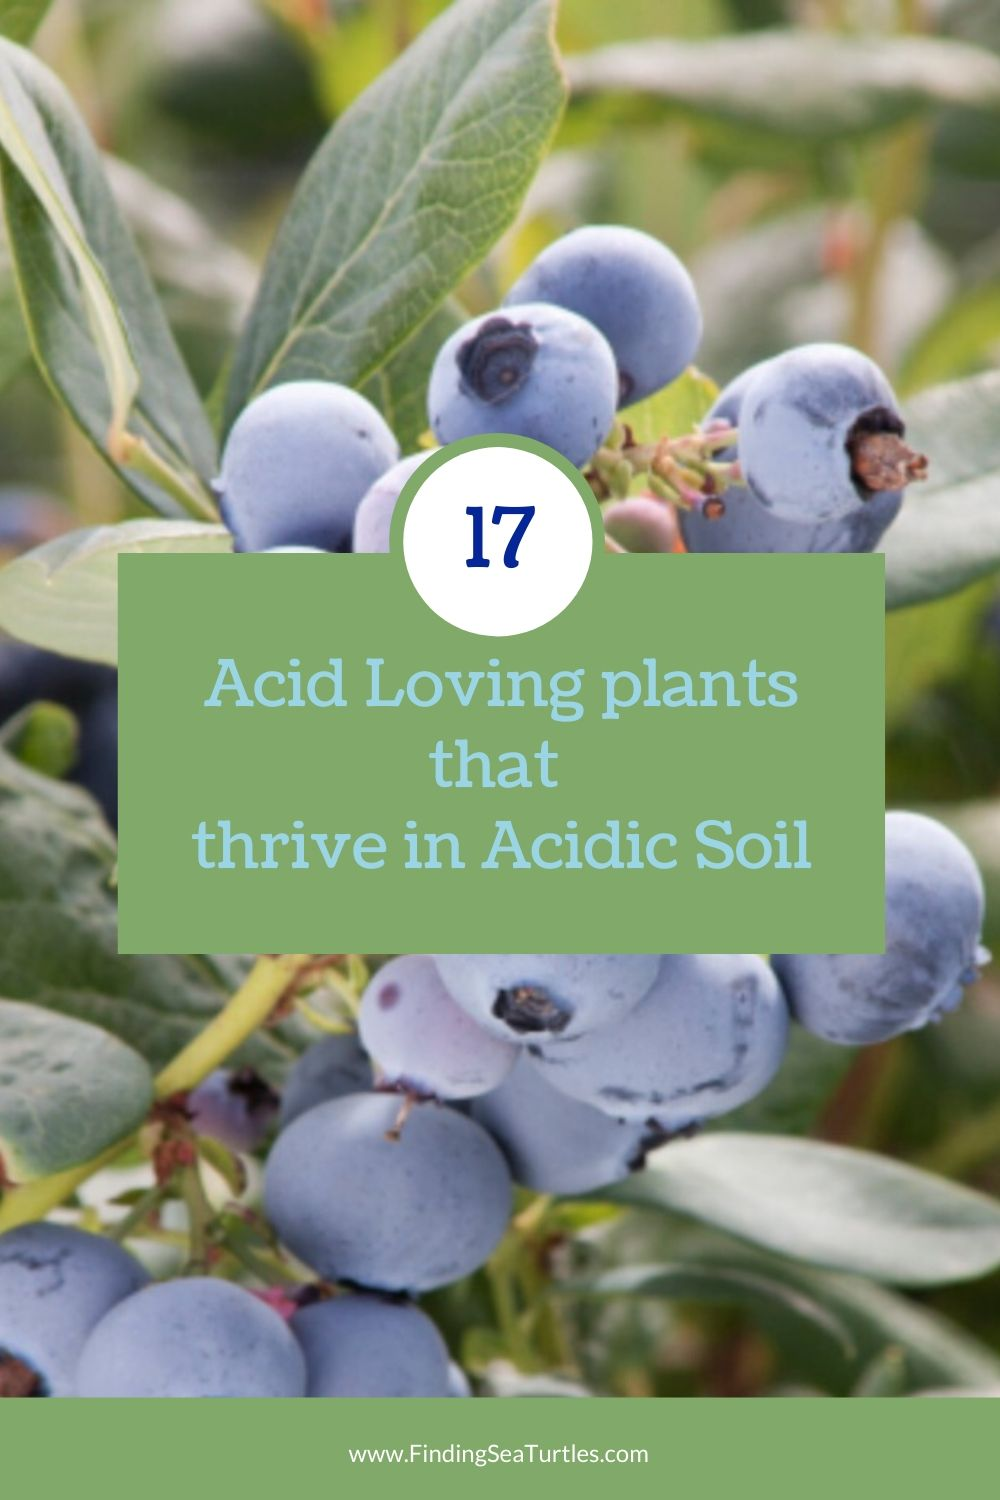 17 Acid Loving Plants that thrive in Acidic Soil #Perennials #AcidLovingPerennials #AcidLovingPlants #Gardening #AcidicSoil